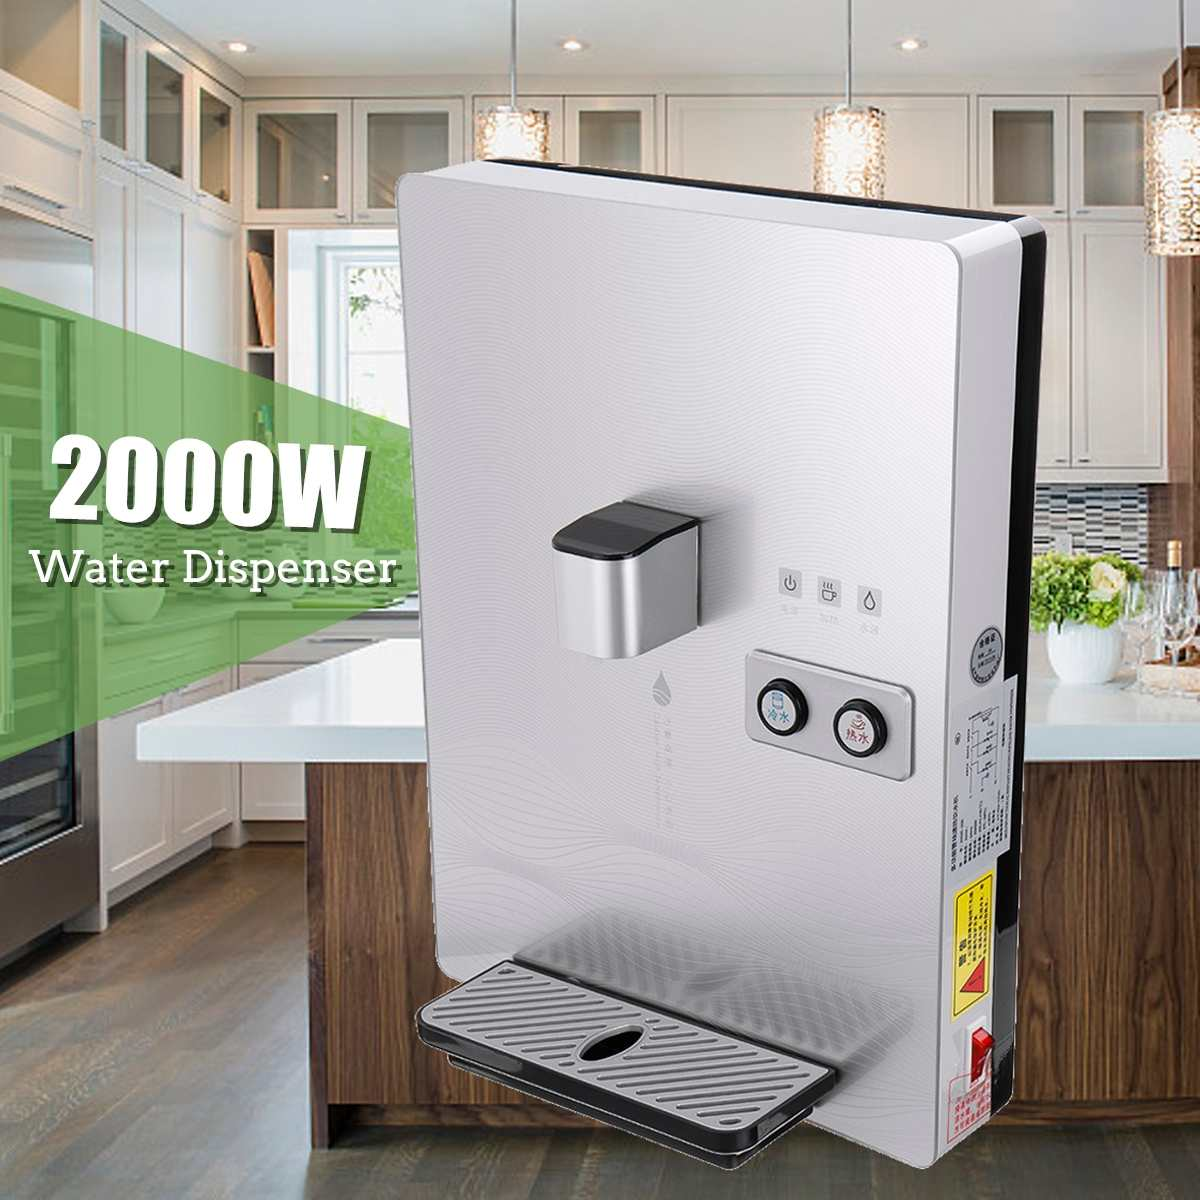 2000W Wall Mounted Drinker Electric Hot Cold Water Dispensers Water Pumping Device Water Heater Induction Rapid Shower